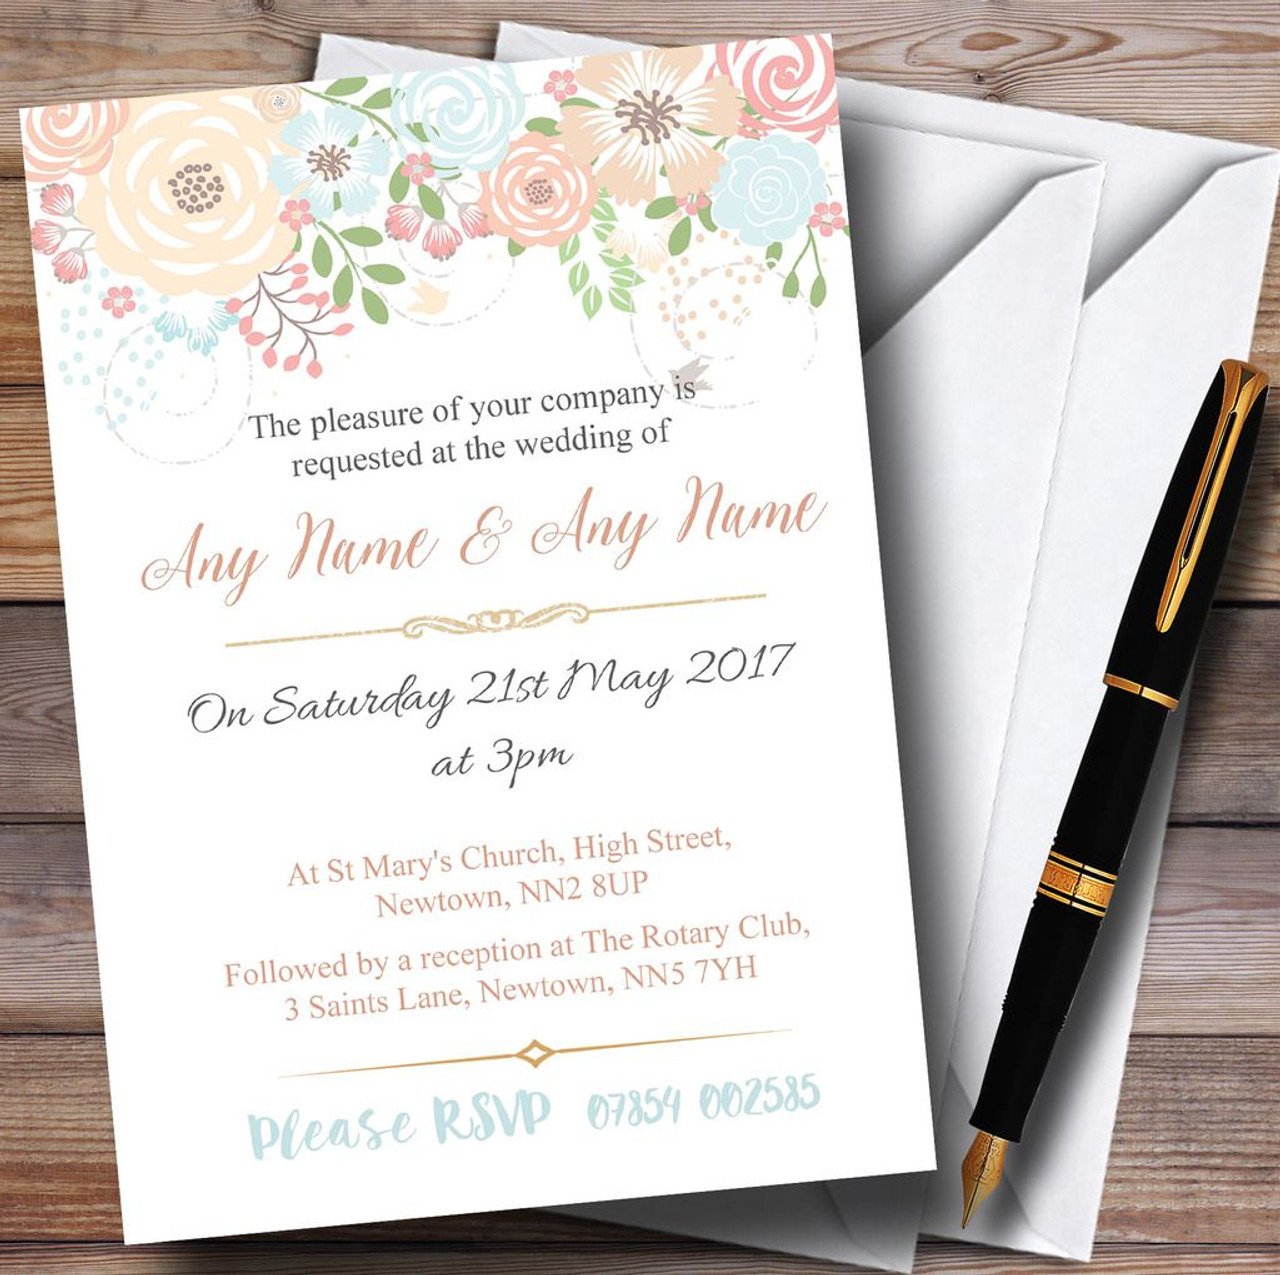 Moonpig Wedding Invites Images Party Invitations Ideas Gallery Personalised